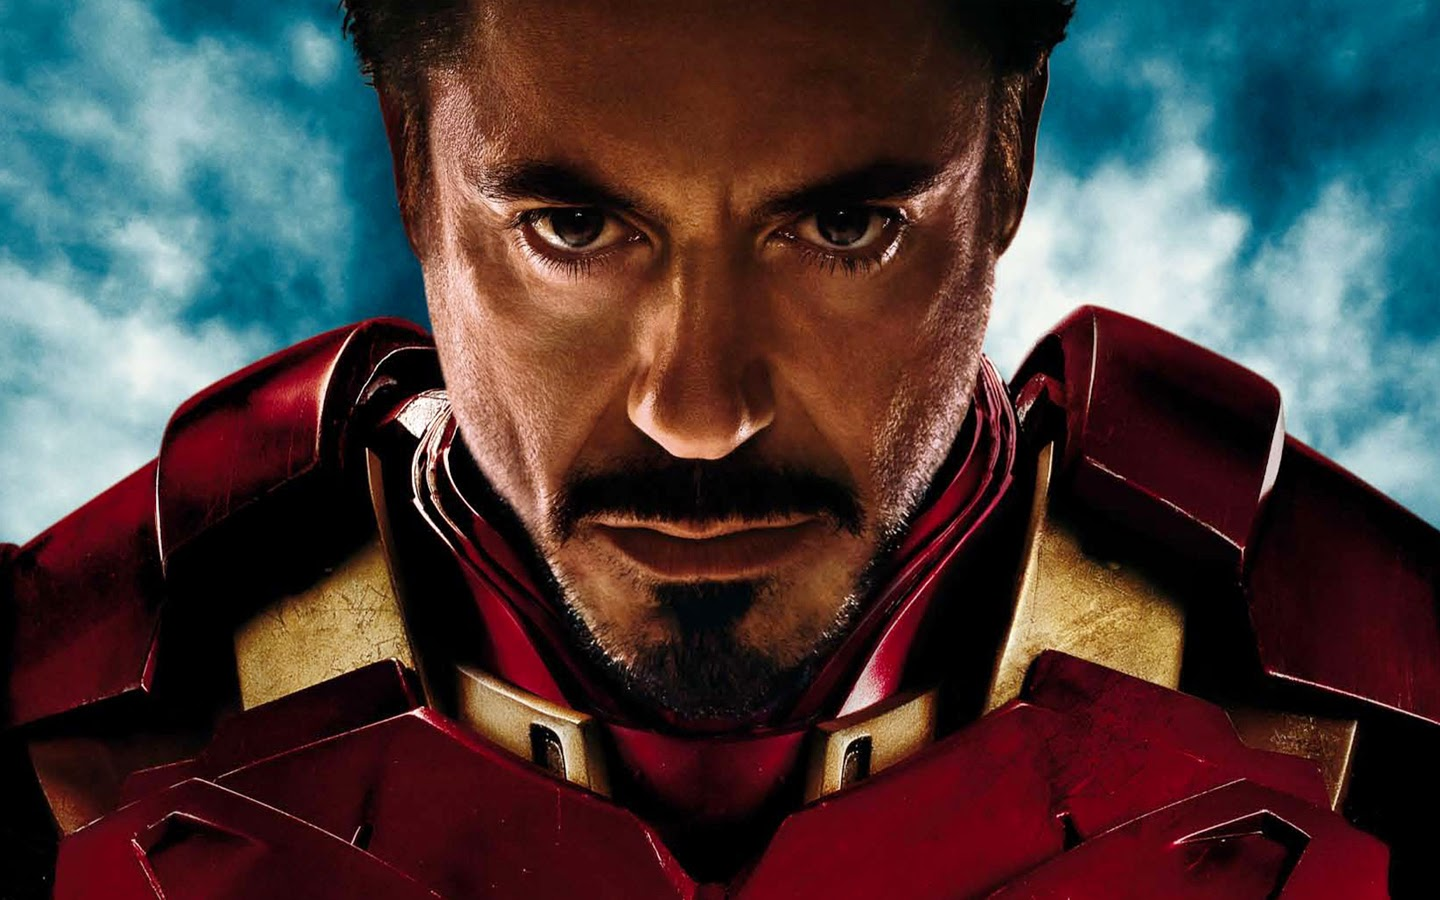 elon musk is the real life inspiration of ironman's tony stark